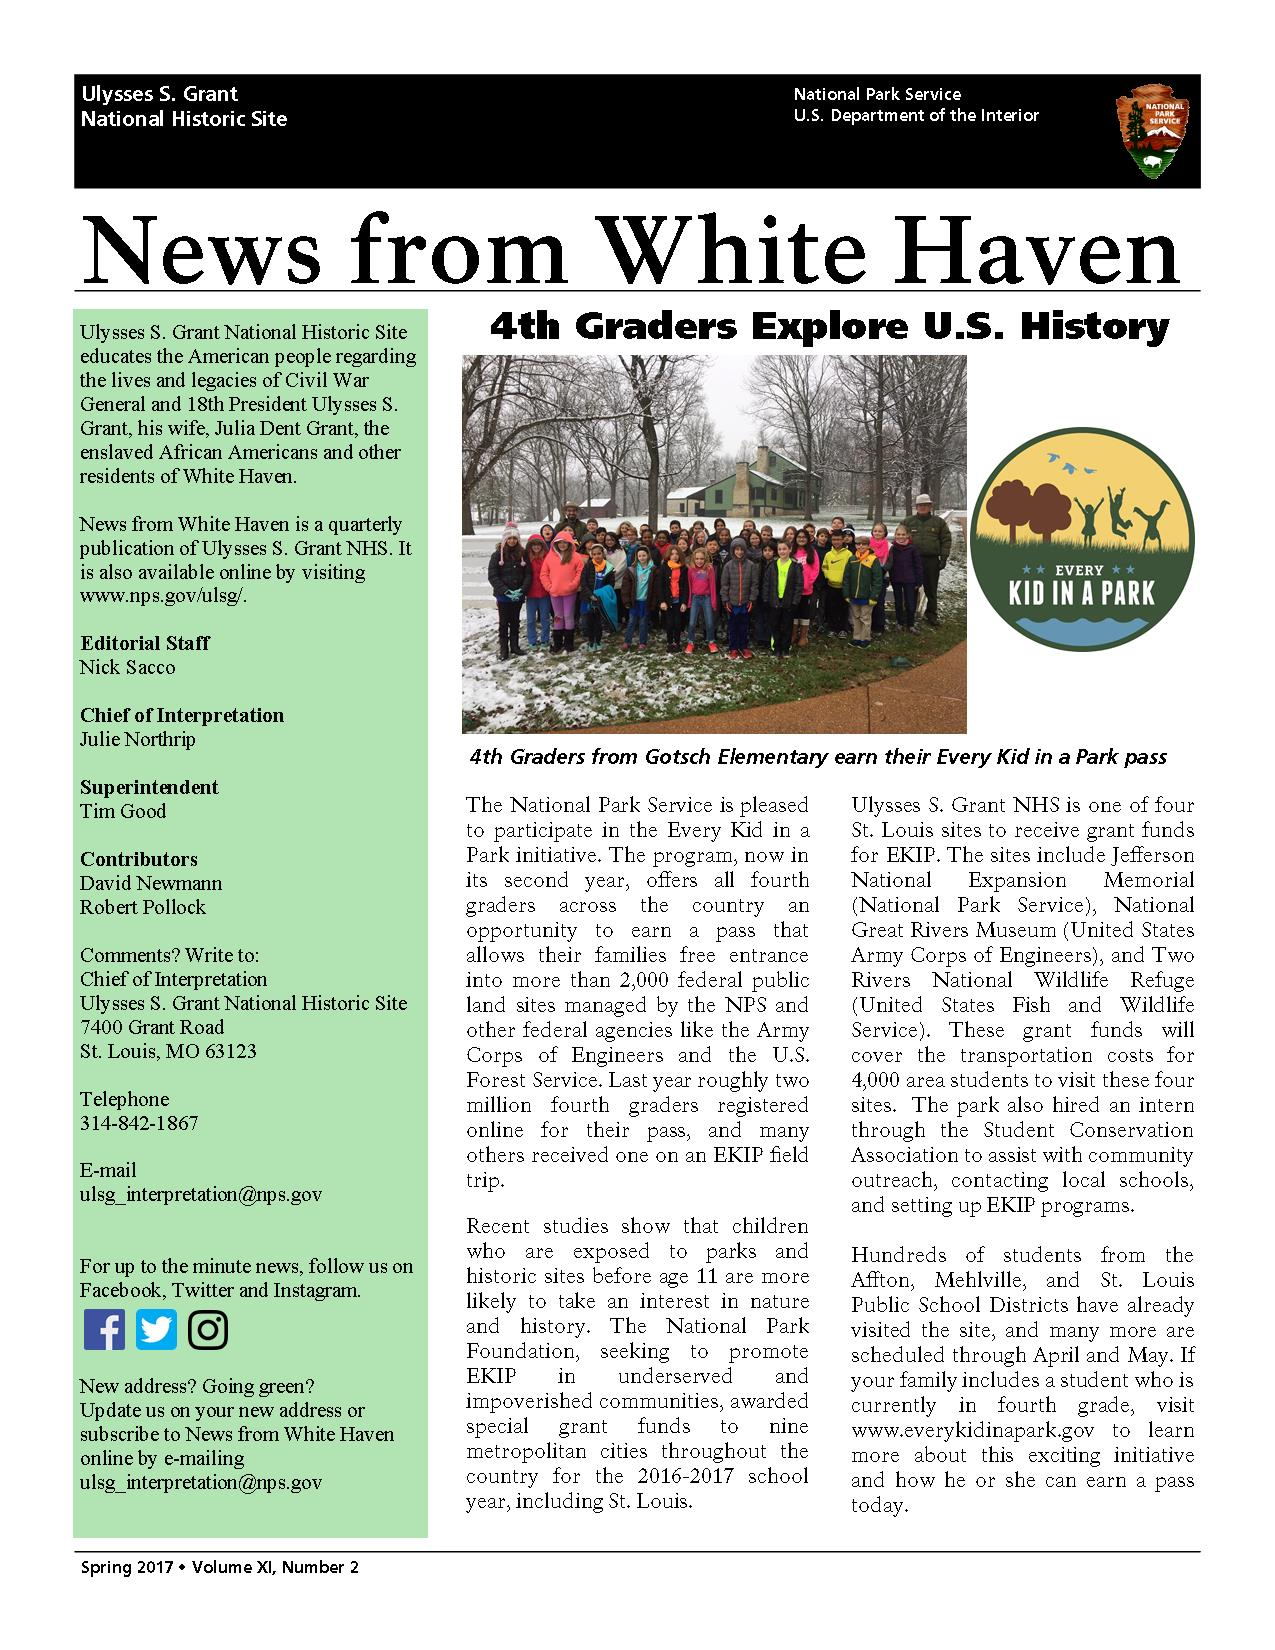 picture of front page of newsletter with school group